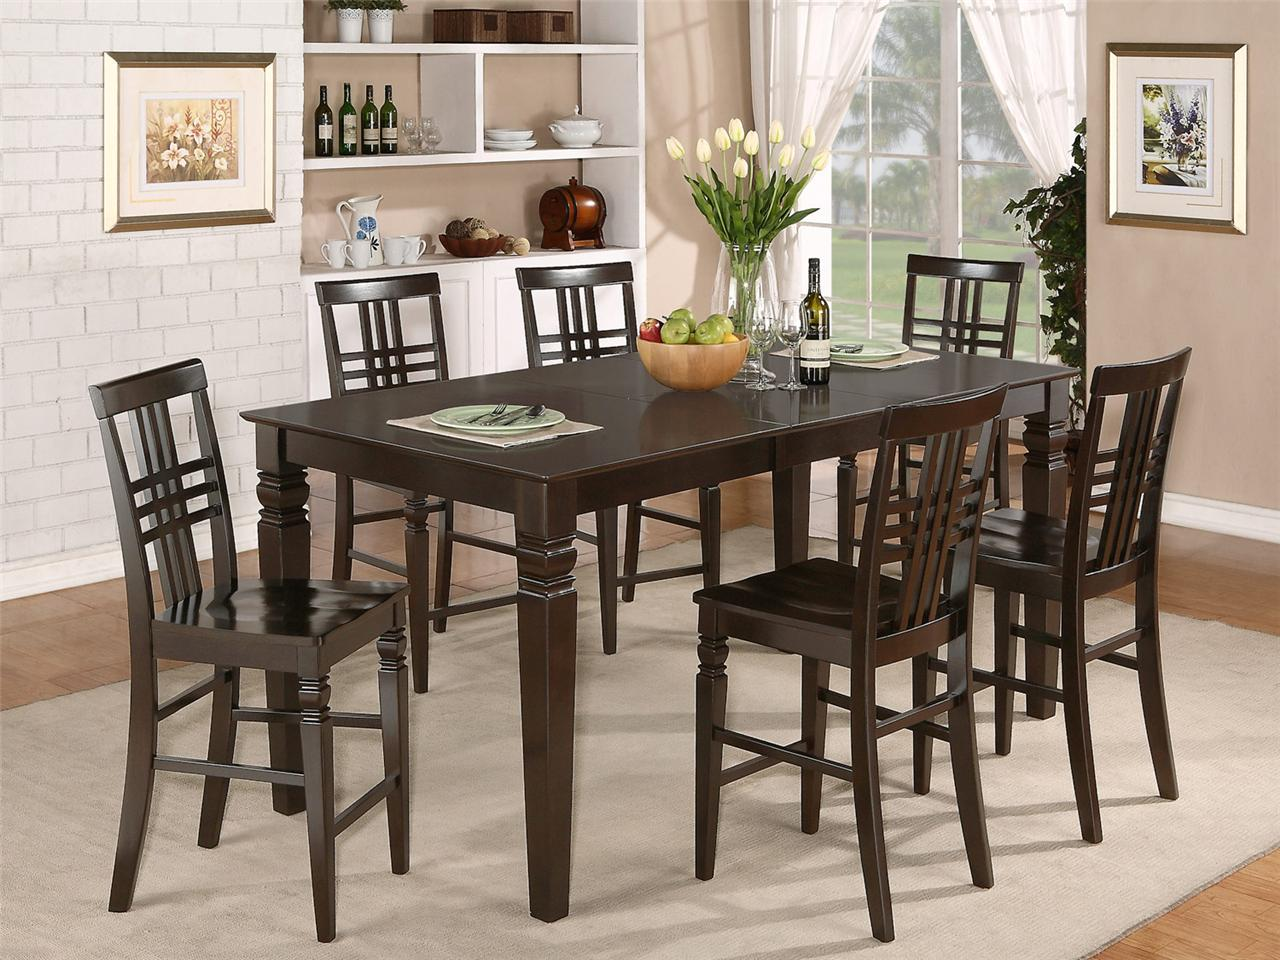 9pc counter height dining set table with 8 wood seat chairs in cappuccino ebay. Black Bedroom Furniture Sets. Home Design Ideas